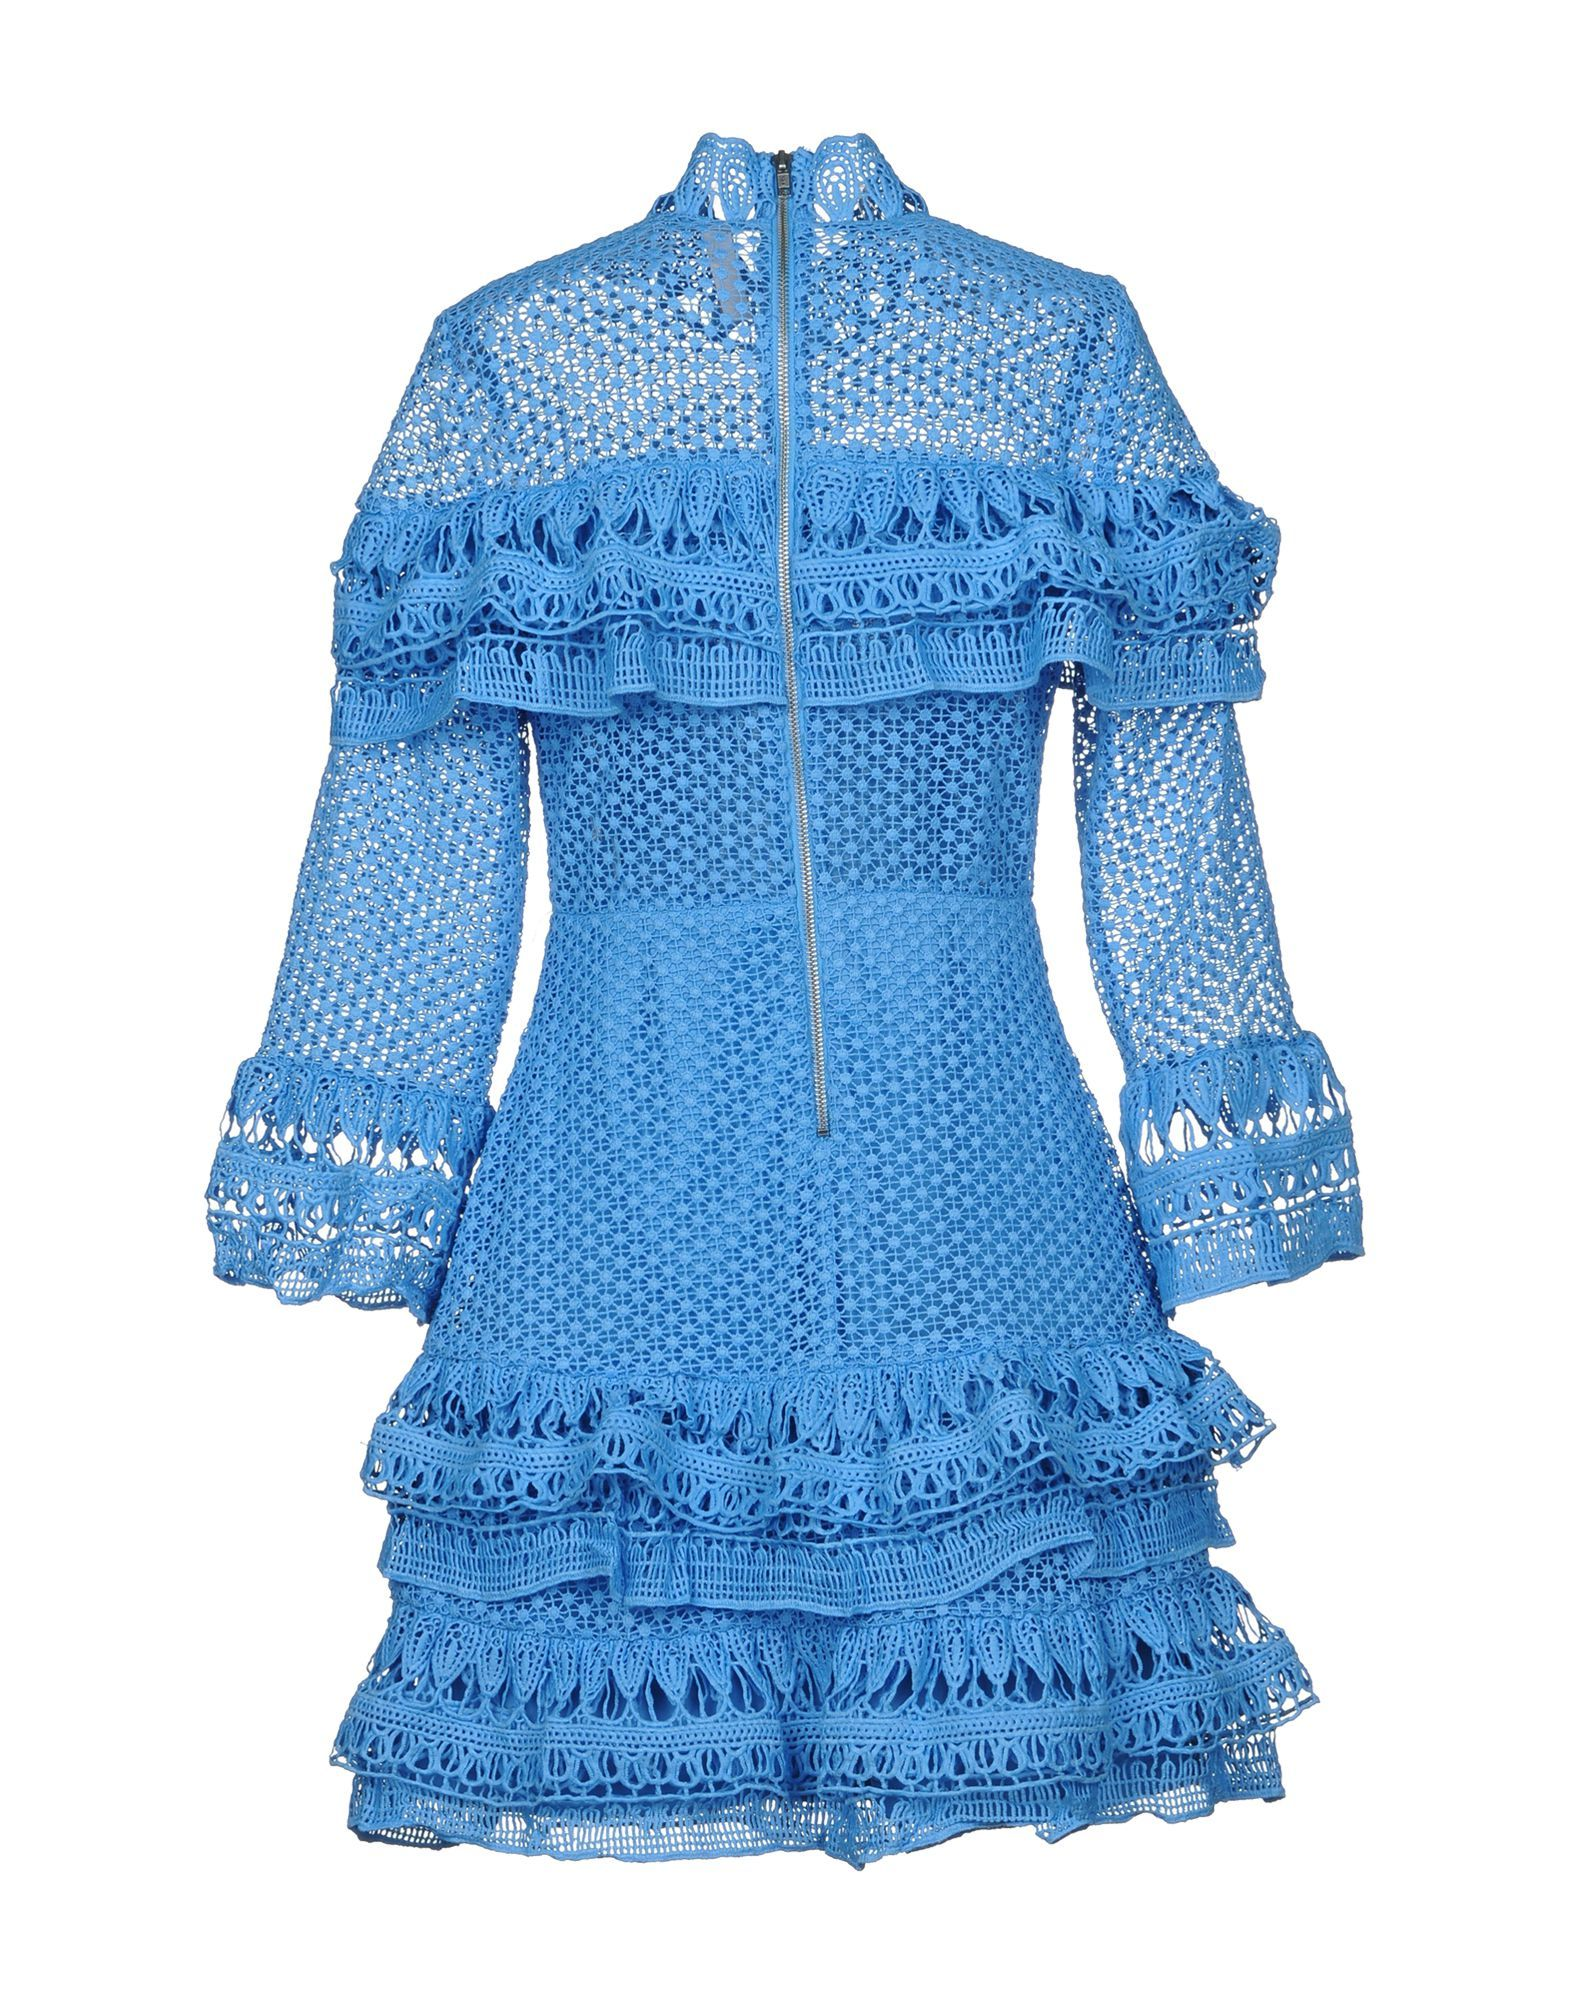 Y.A.S. Sport Azure Lace Frill Dress